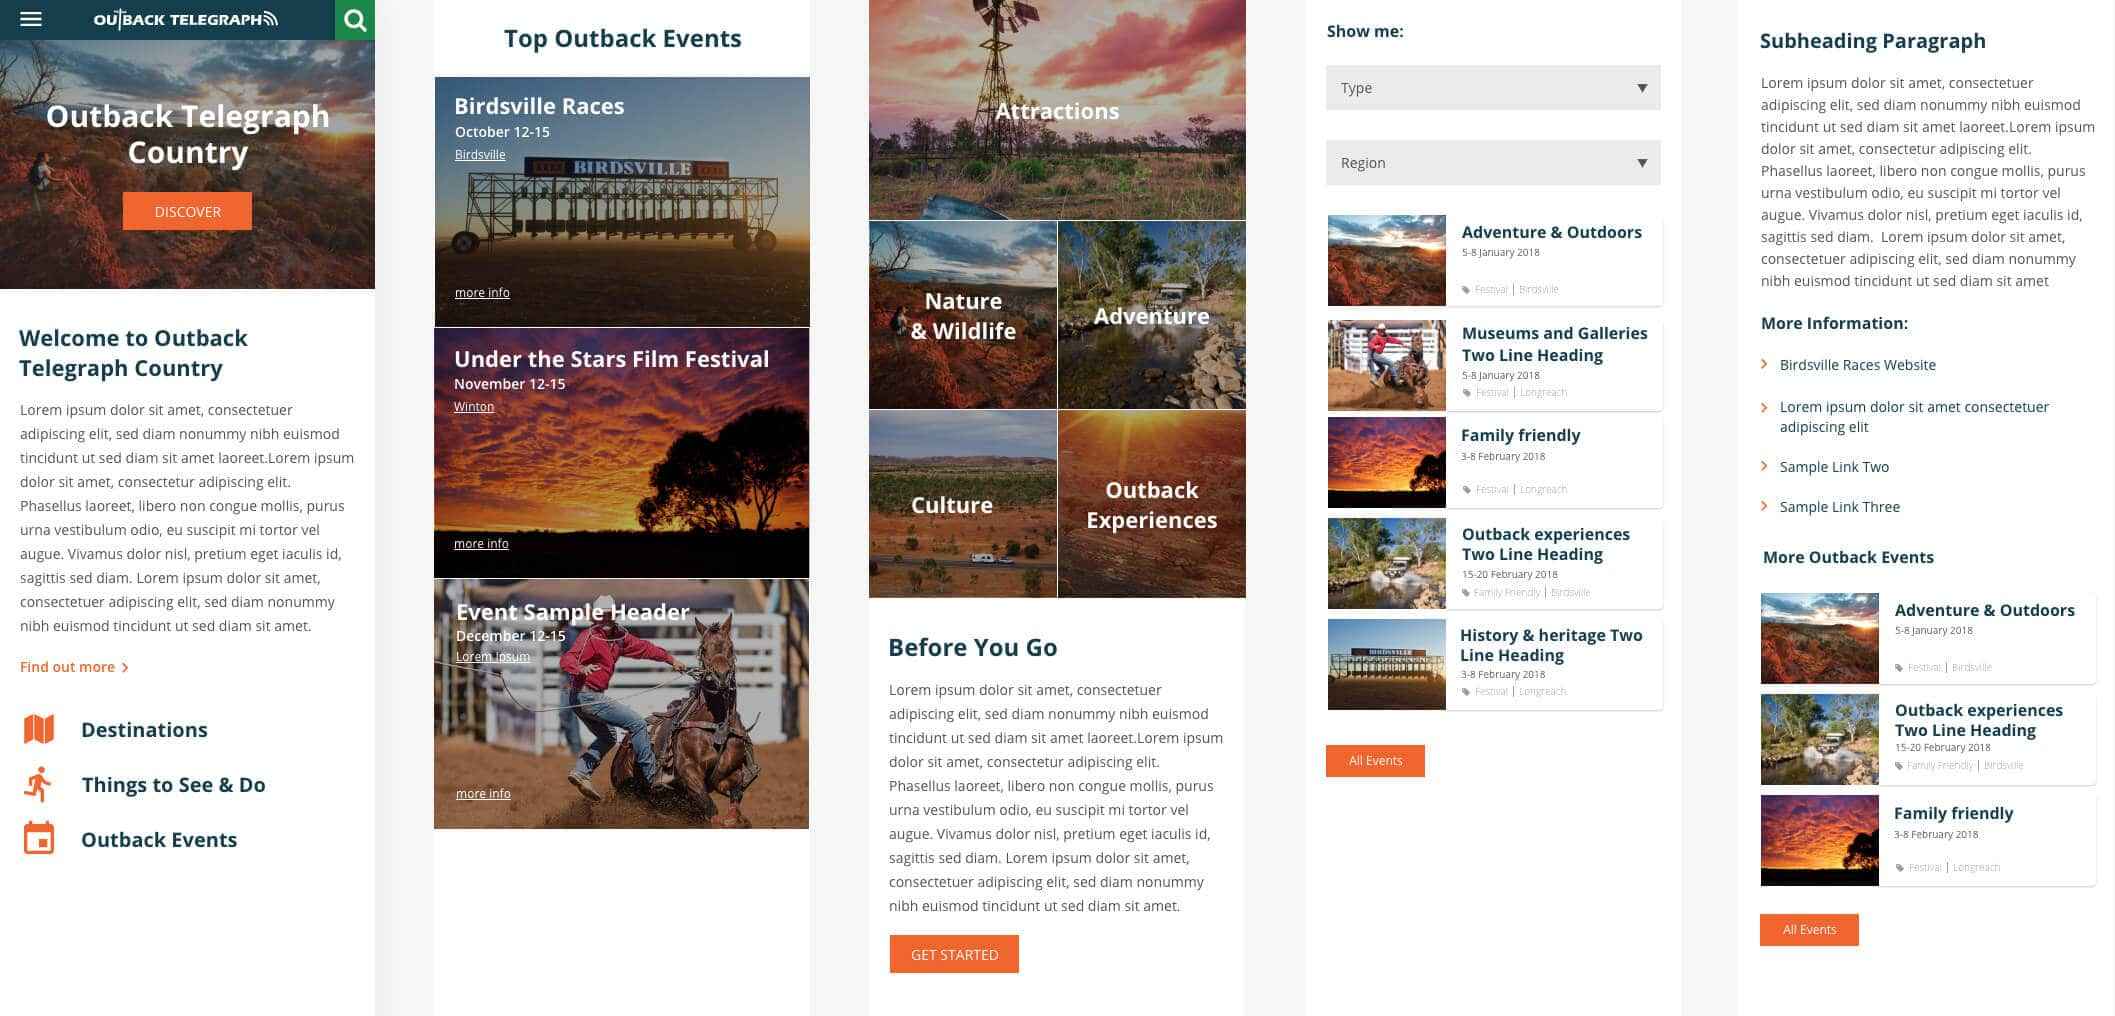 Outback Telegraph - Website Preview 2